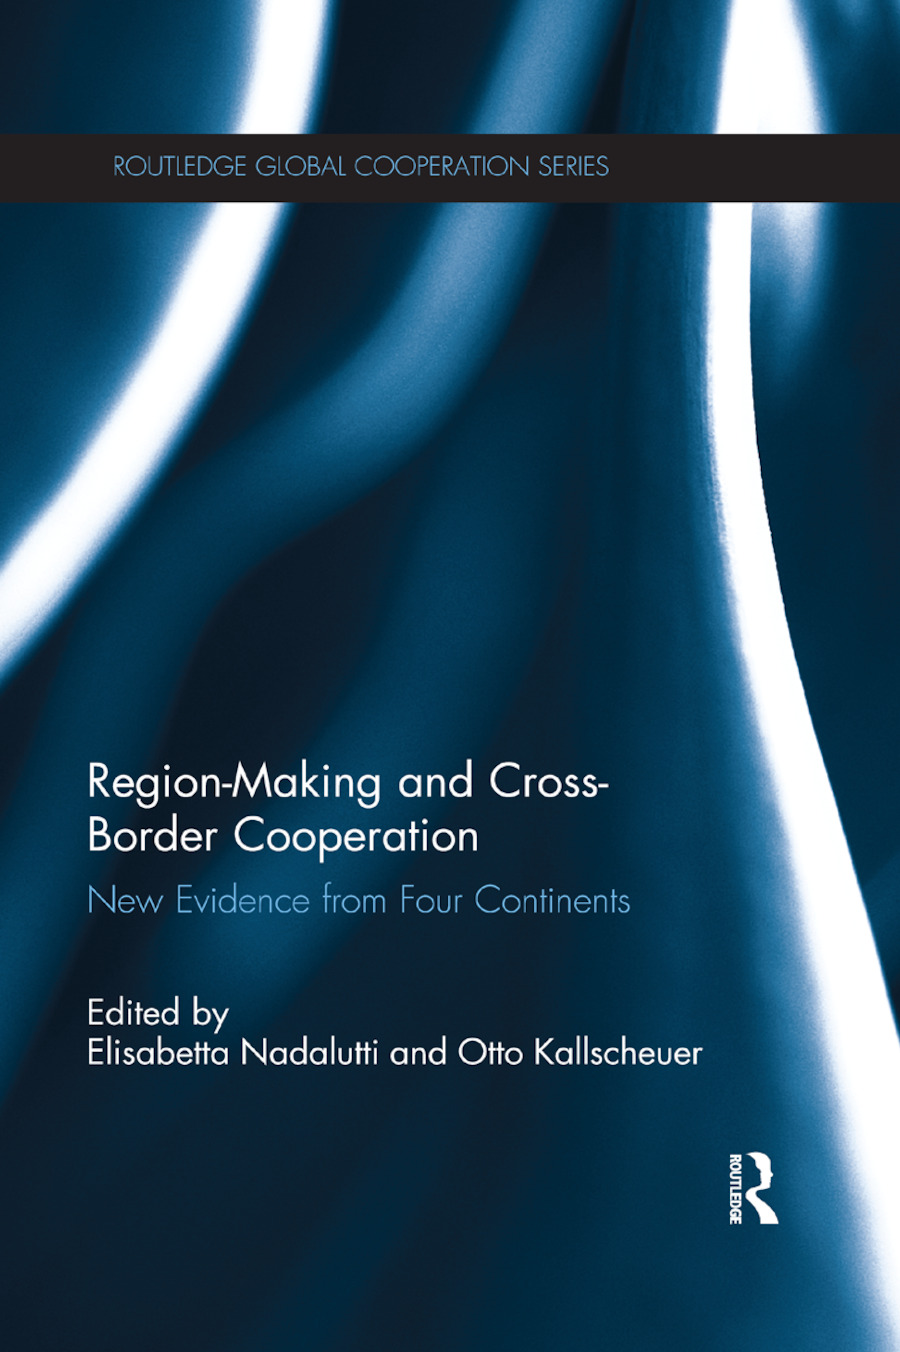 Region-Making and Cross-Border Cooperation: New Evidence from Four Continents book cover